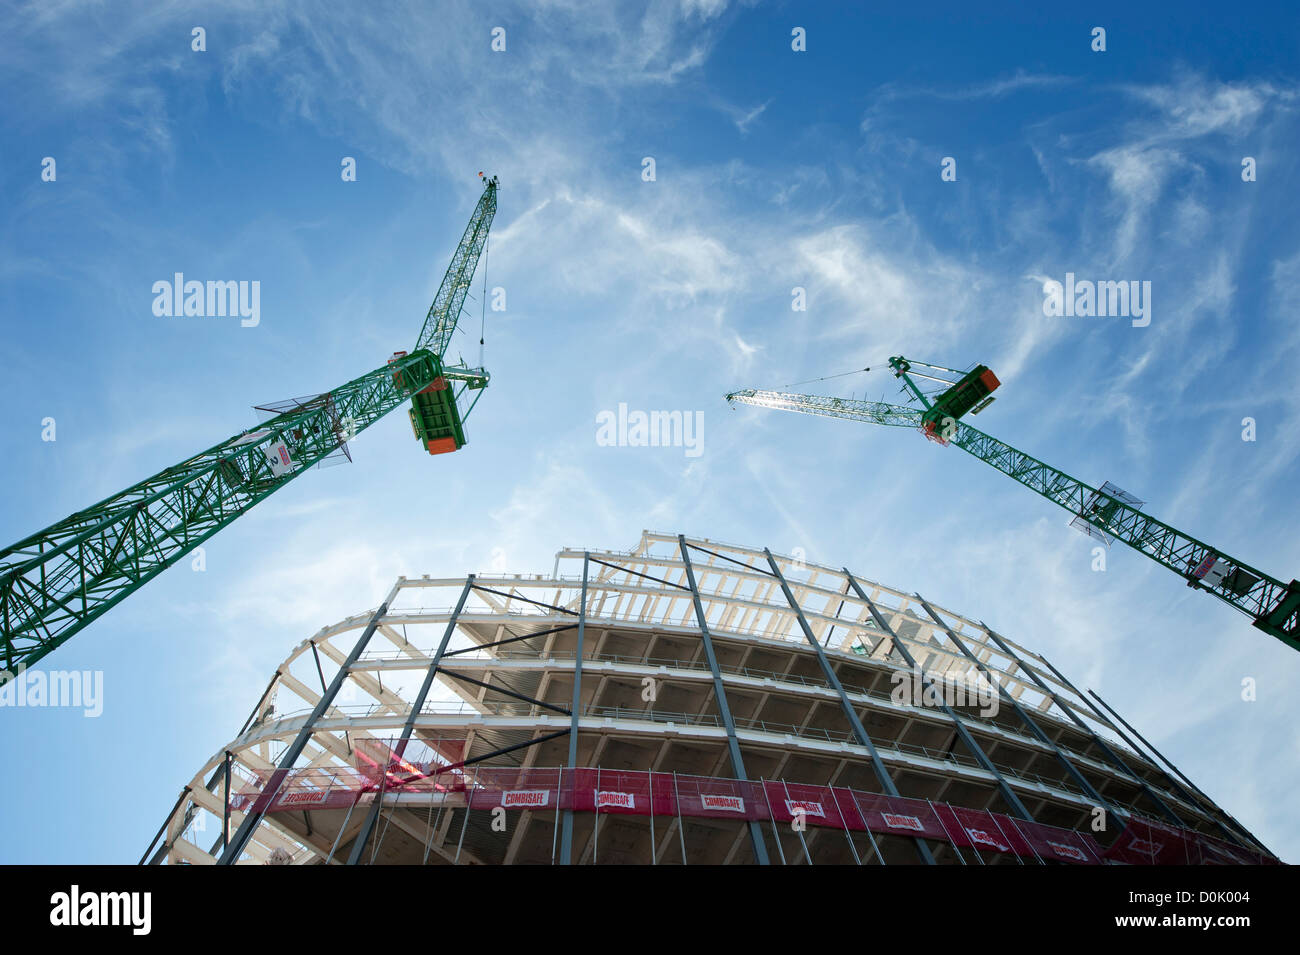 A new building under construction in Manchester city centre. - Stock Image